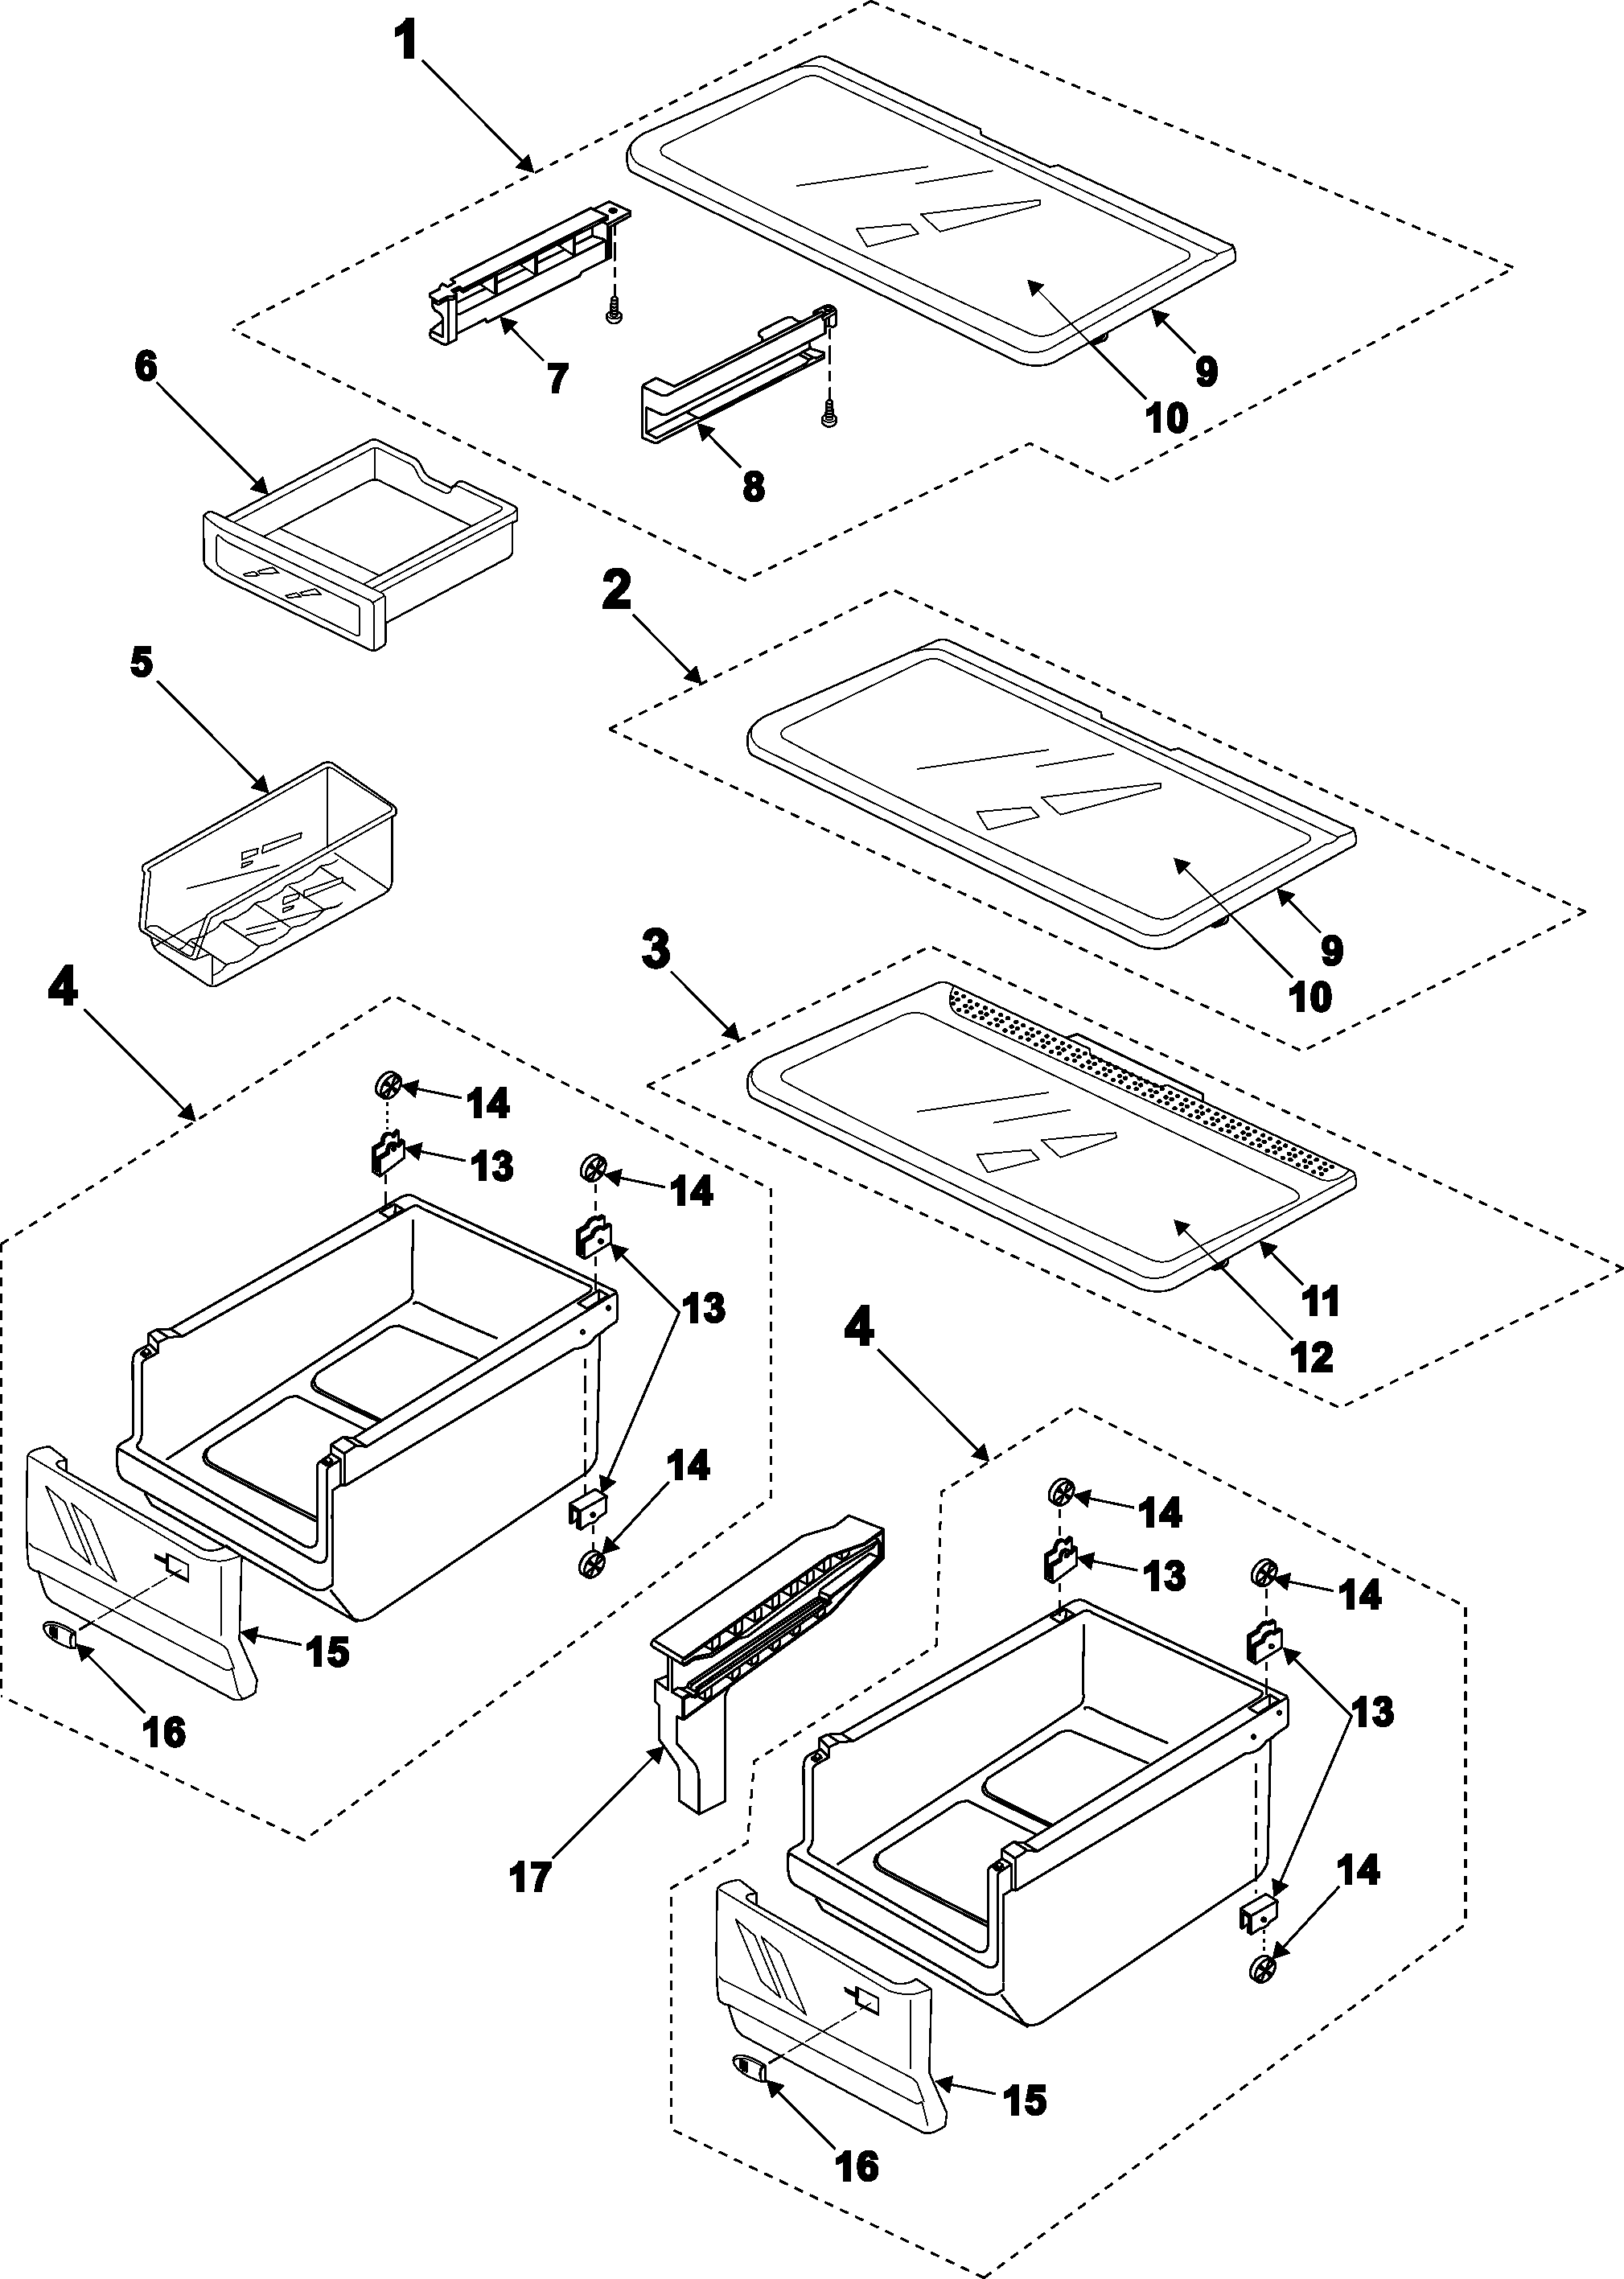 REFRIGERATOR SHELVES Diagram & Parts List for Model